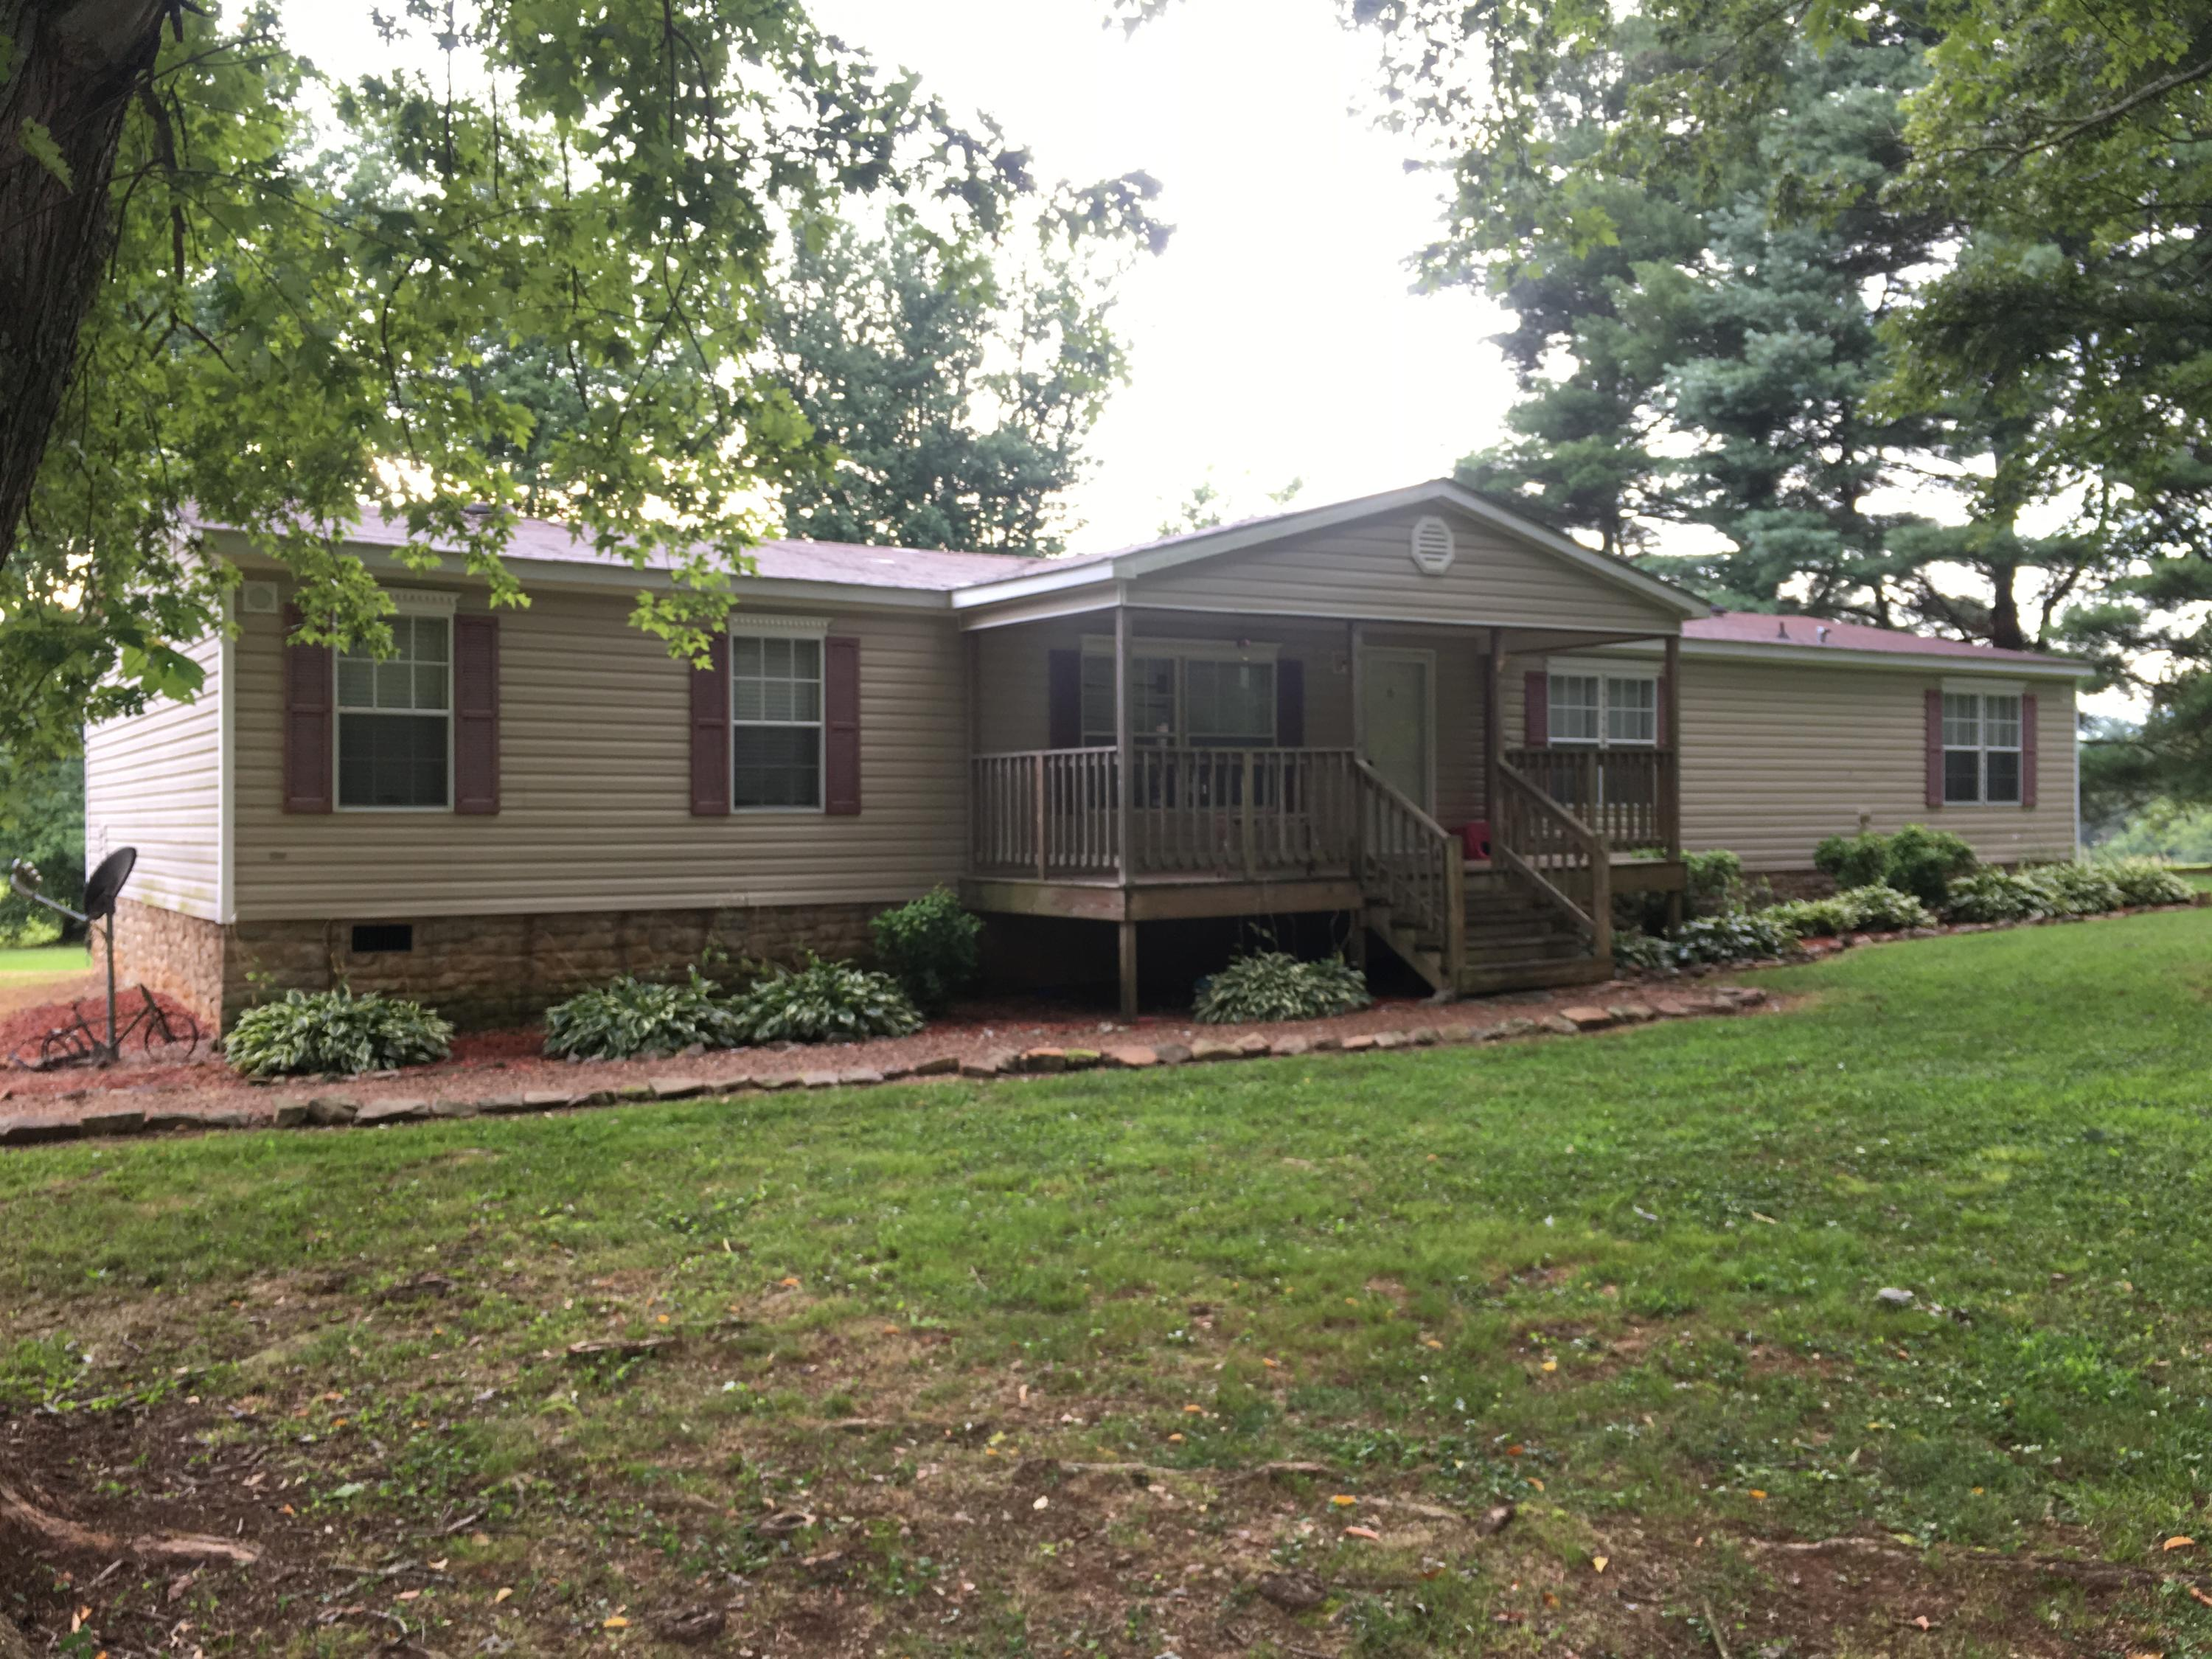 625 Dempsey Rd, Whitwell, TN 37397